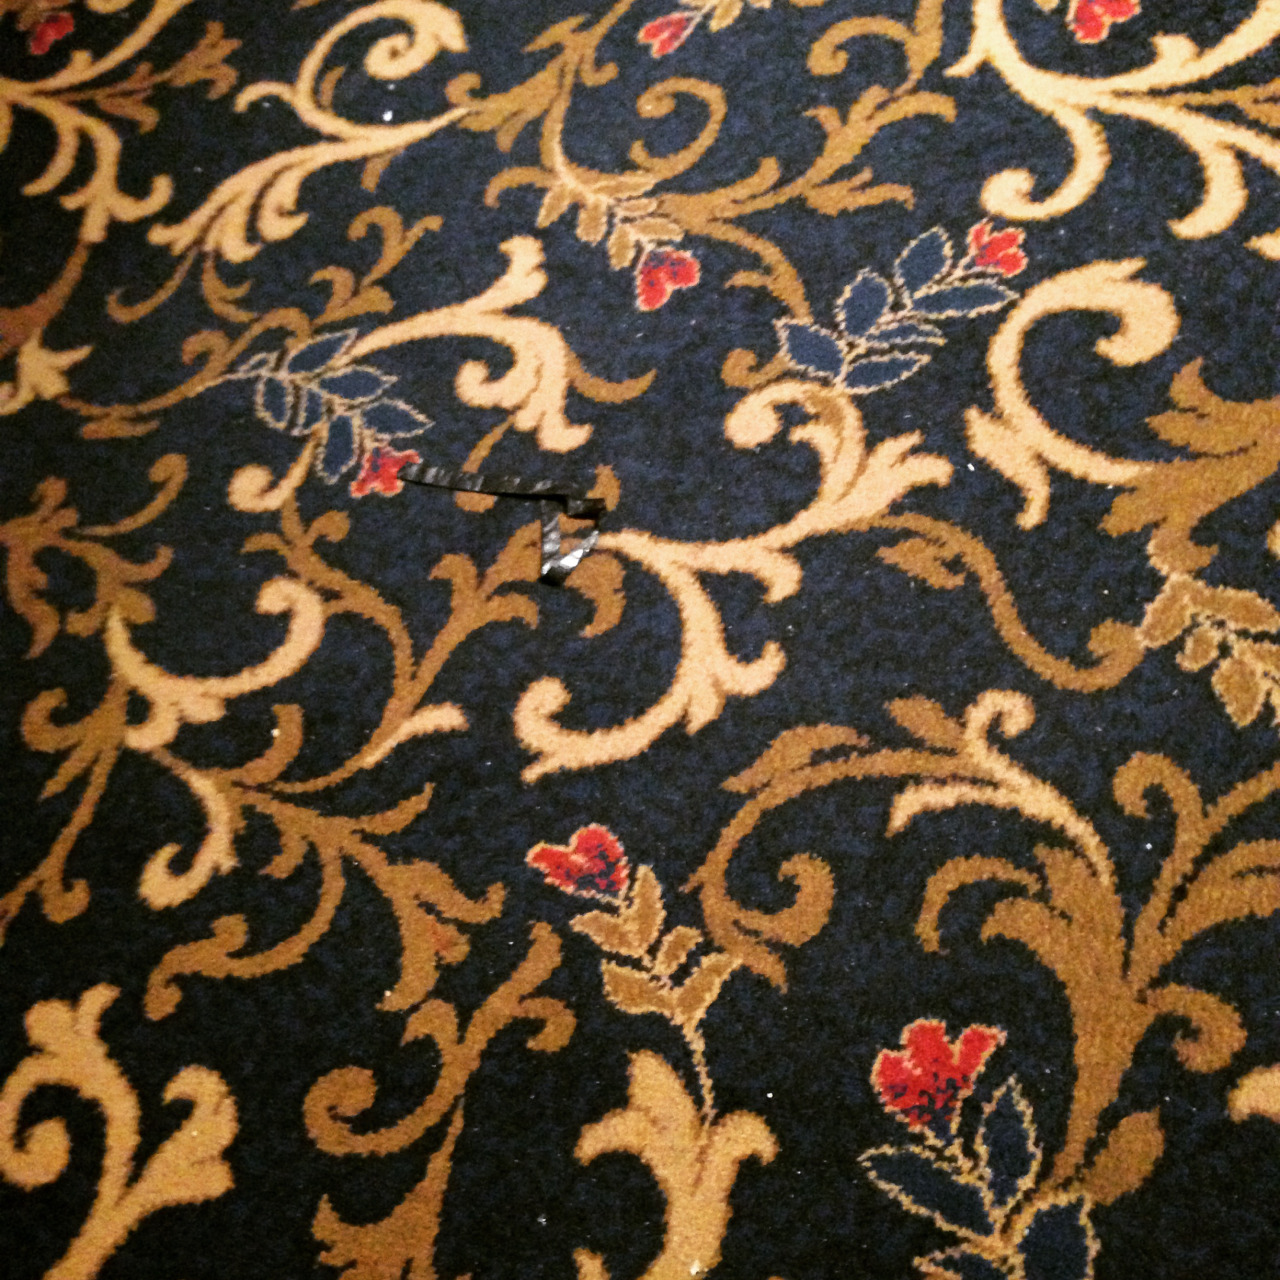 Wetherspoons Carpets: A Field Study